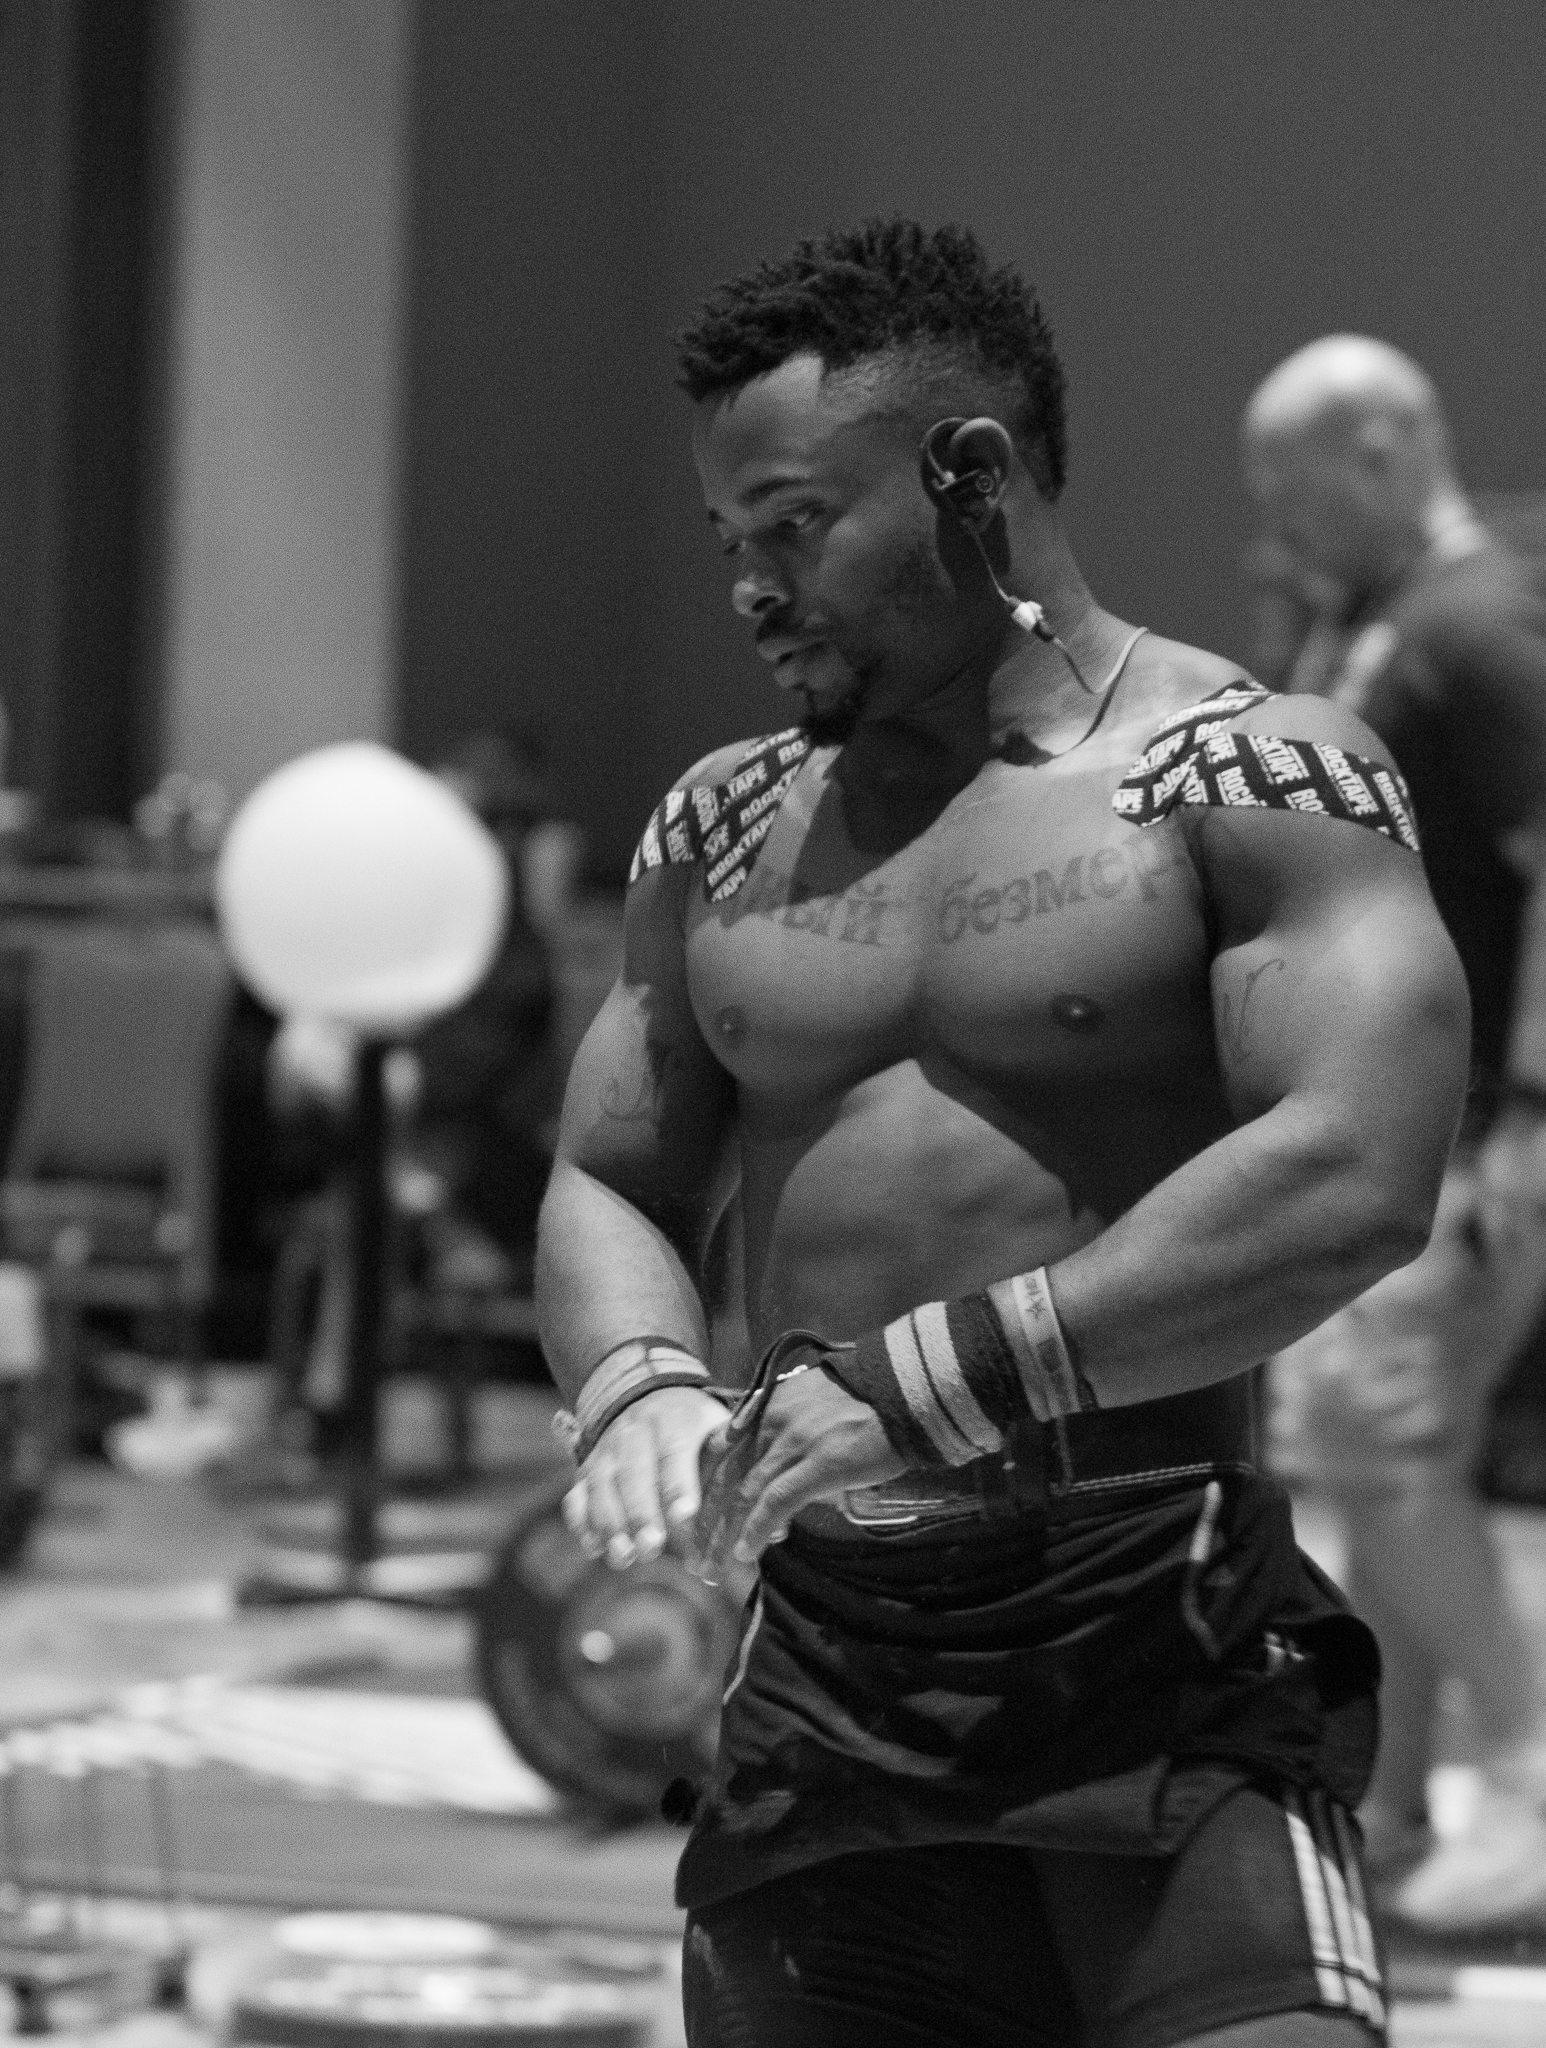 session-a-favorites-american-open-2016-weightlifting-photography (22 of 38).jpg